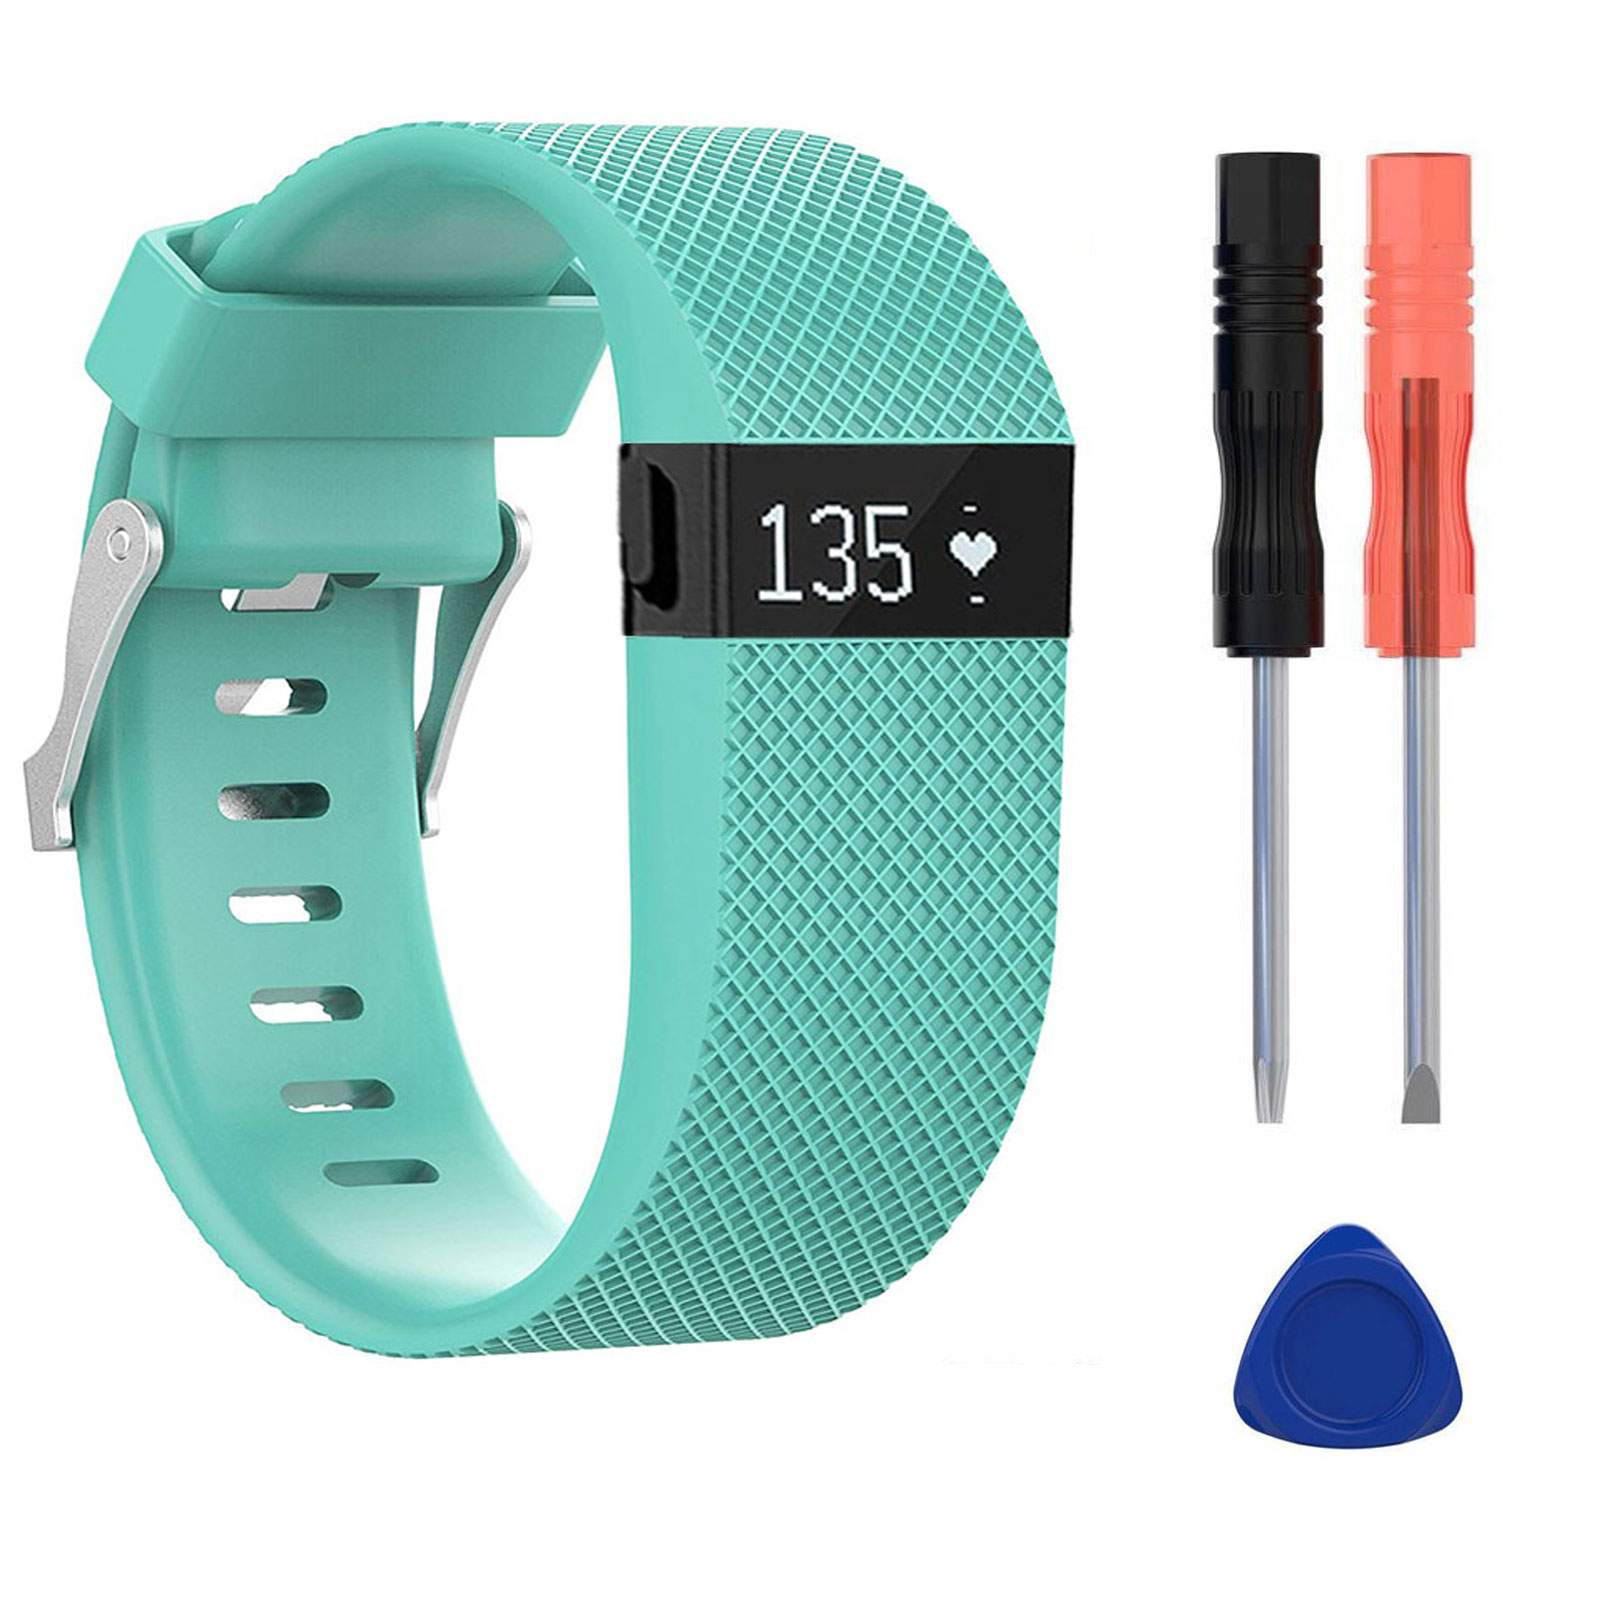 Replacement Wristband, EEEKit Premium Silicone Wristband Strap Band Bracelet with Metal Buckle Clasp for Fitbit Charge HR Fitness Tracker, Screwdriver Tools Kit Included